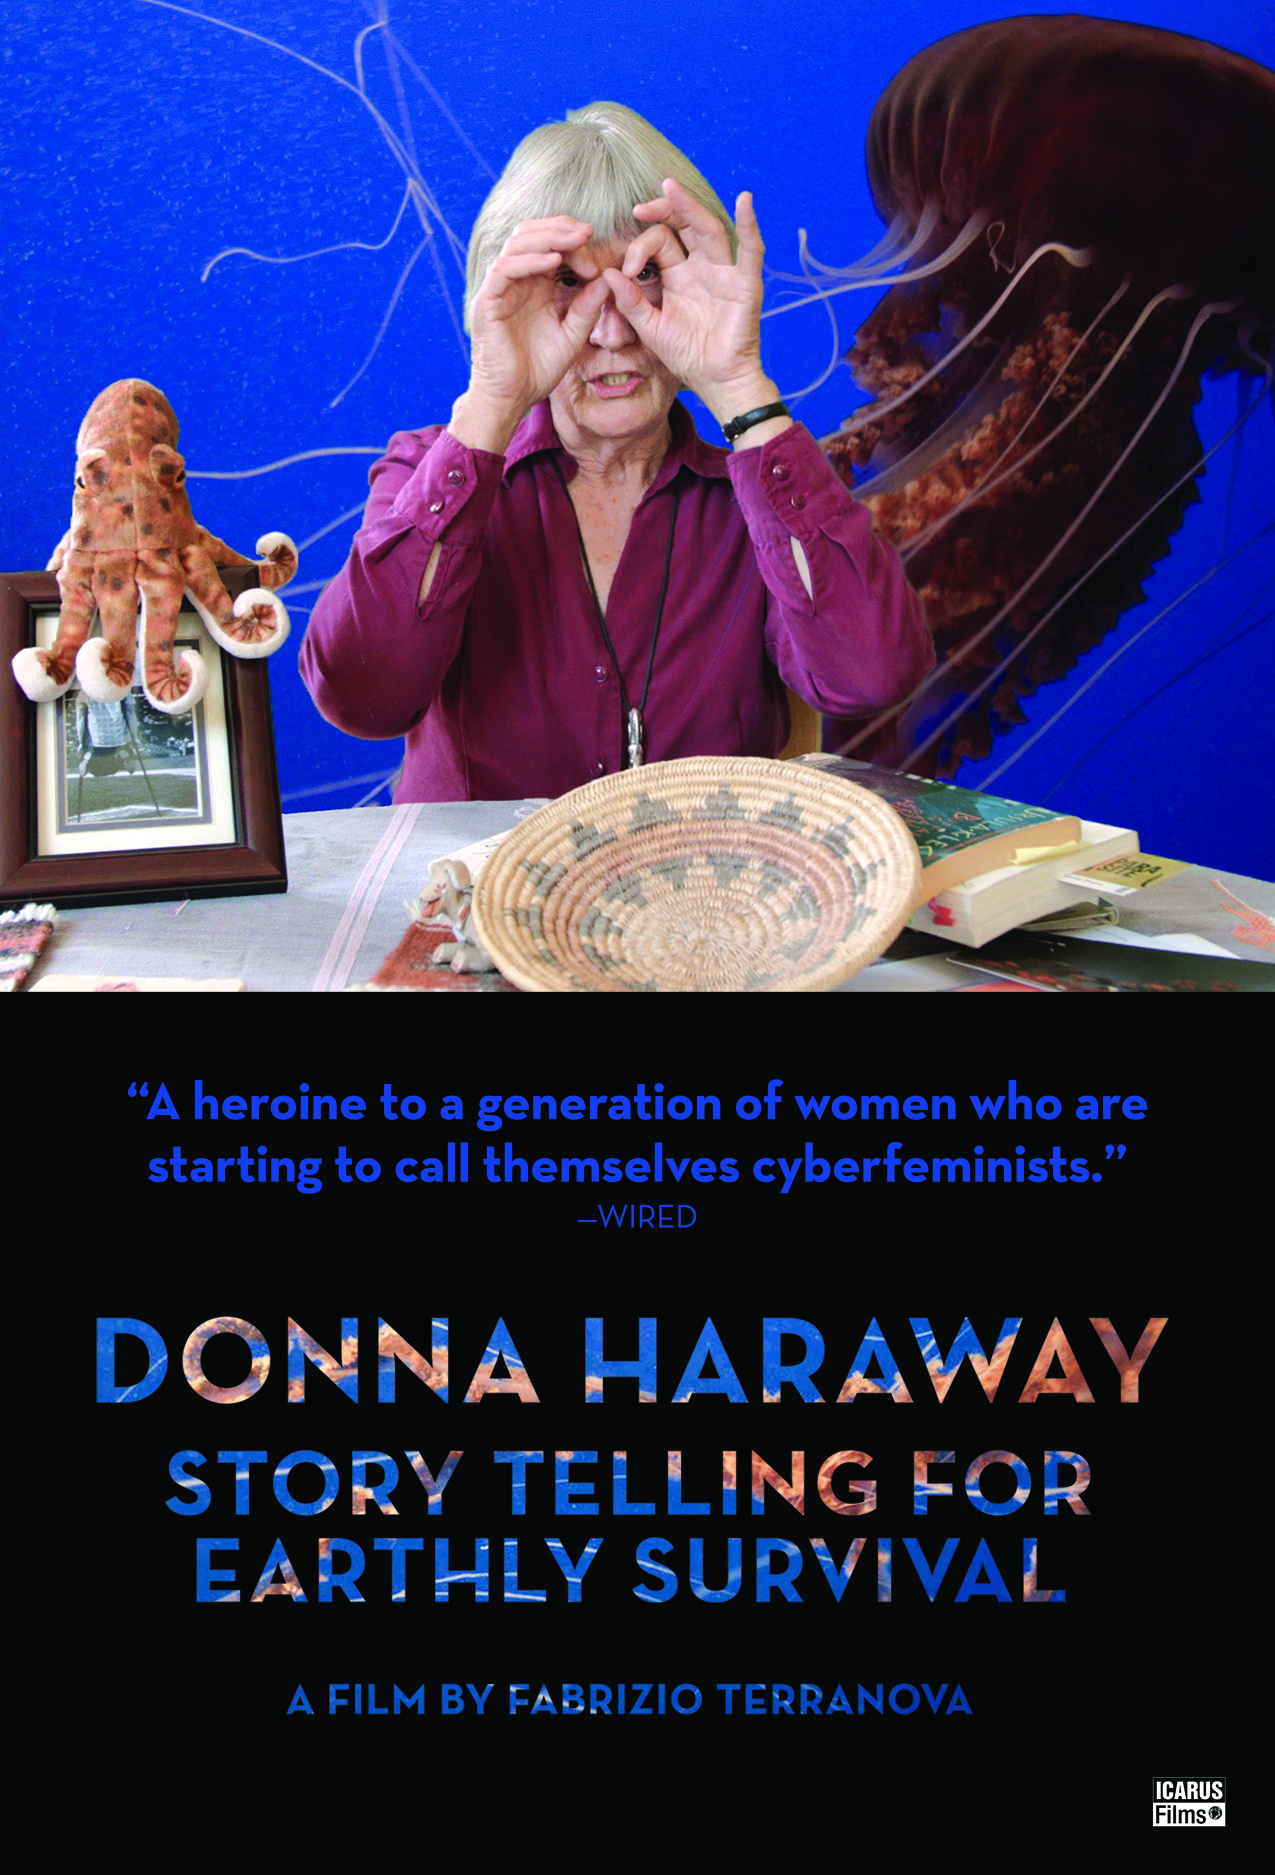 Afbeeldingsresultaat voor donna haraway storytelling for earthly survival